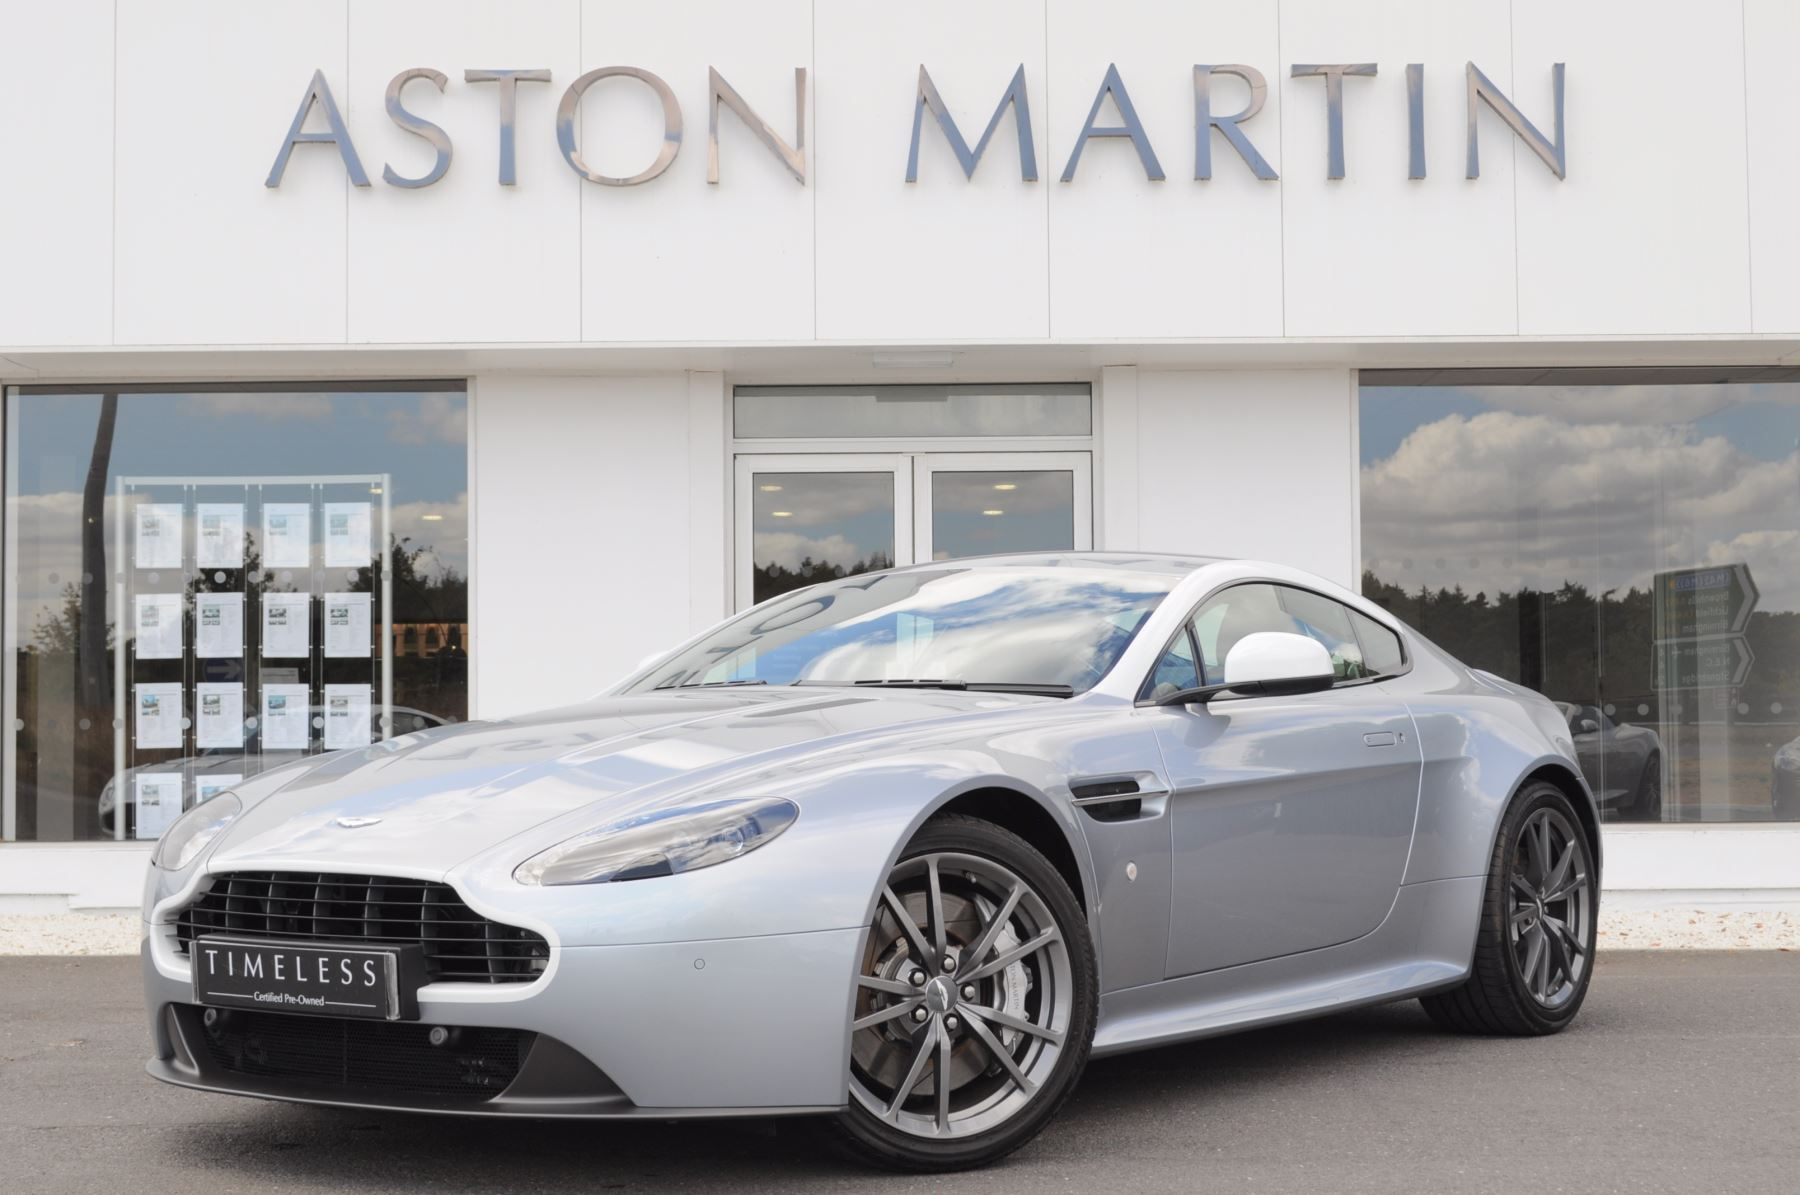 Aston Martin Vantage N430 N430 2dr 4.7 3 door Coupe (2015)